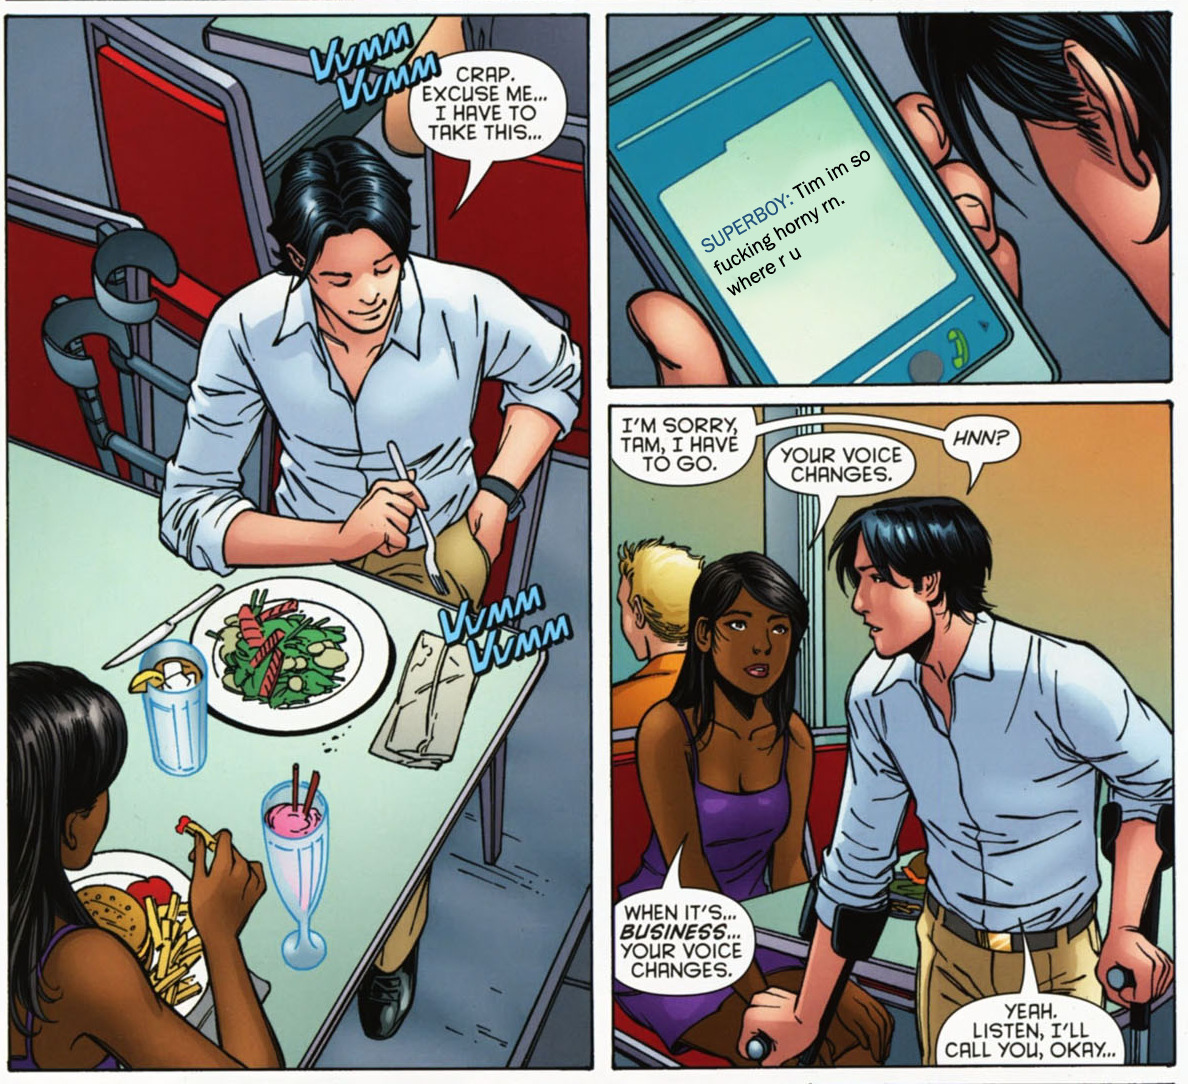 batmobiles:  plathgirl:  koncubine:  WHOOPS SORRY TAM. KON IS SEXTING HIM. HE HAS TO GO TO HIS ~FRIEND~ IN NEED.  SAVING THE WORLD, ONE BJ AT A TIME. UGH THIS IS PERFECT I LOVE YOU  BUSINESS VOICE  And you know when i'm down to just my socks What time it is It's business it's business time